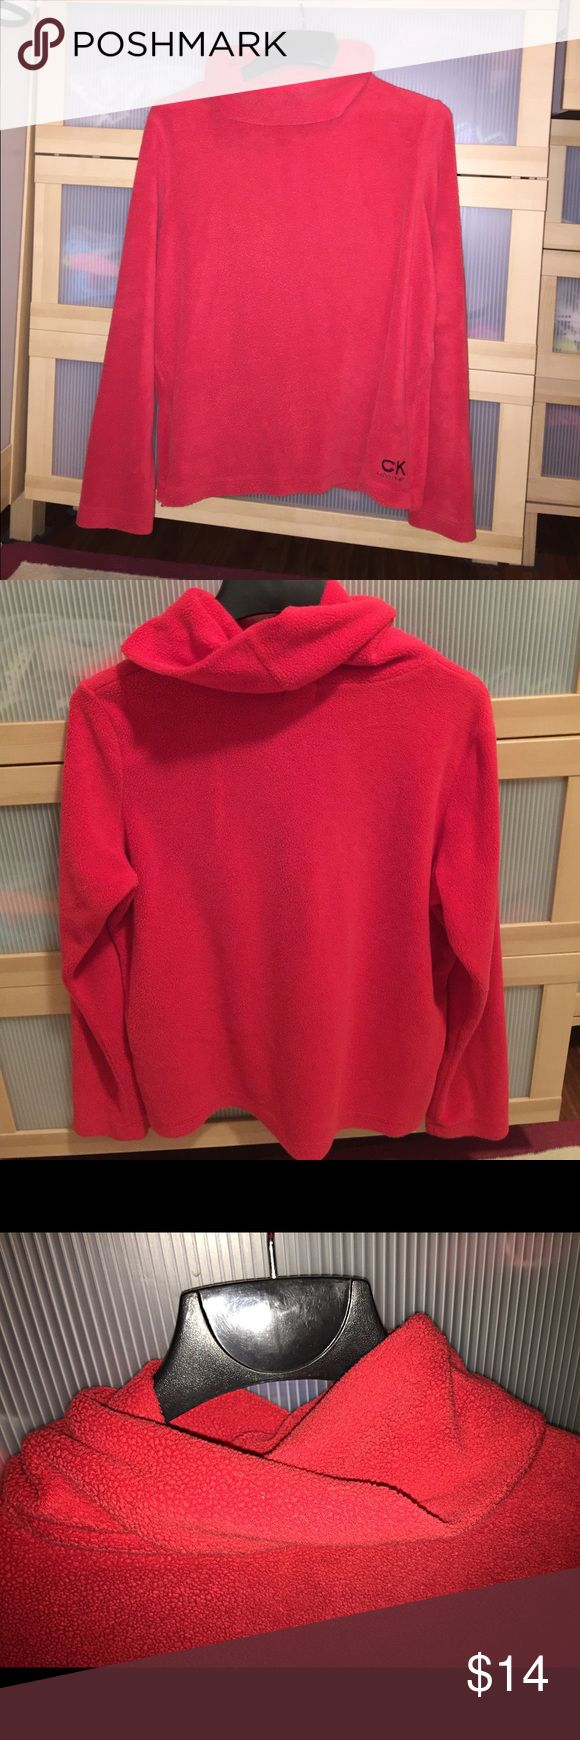 Calvin Klein sweater This Calvin Klein sweater is adorable! It is a red, soft sweater which would be perfect to wear in the fall time. It is a turtle neck which you can fold it down or just wear it as is, it will totally keep your neck warm in the winter, just like a scarf! It keeps you cozy and it's not a itchy sweater. It has two not noticeable zippers on both sides of the sweater, you can wear it zipped or not! Calvin Klein Sweaters Cowl & Turtlenecks